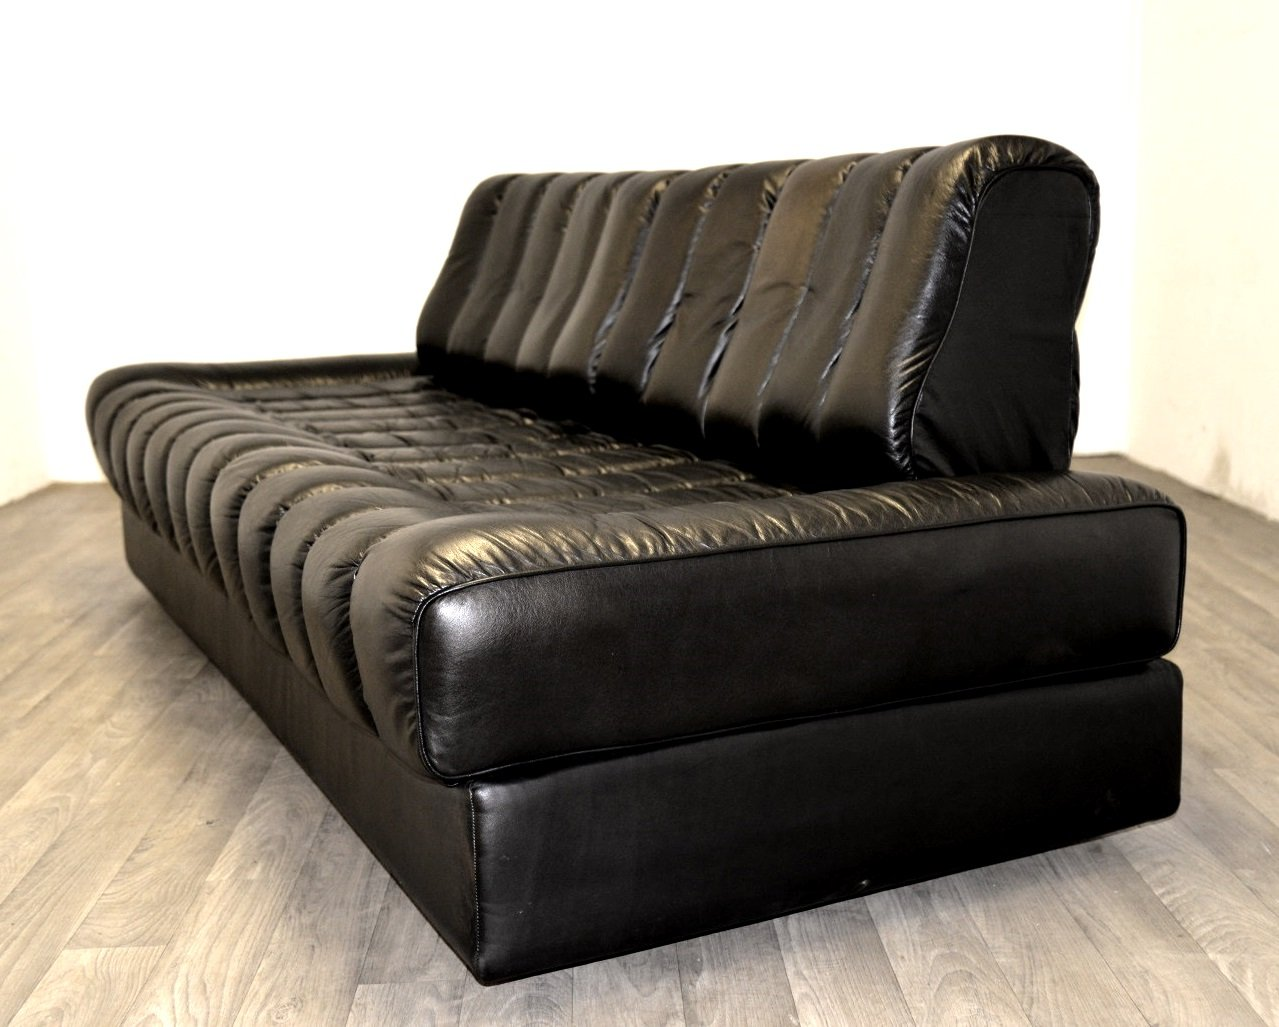 schwarzes ds 85 leder schlafsofa von de sede 1960er bei. Black Bedroom Furniture Sets. Home Design Ideas